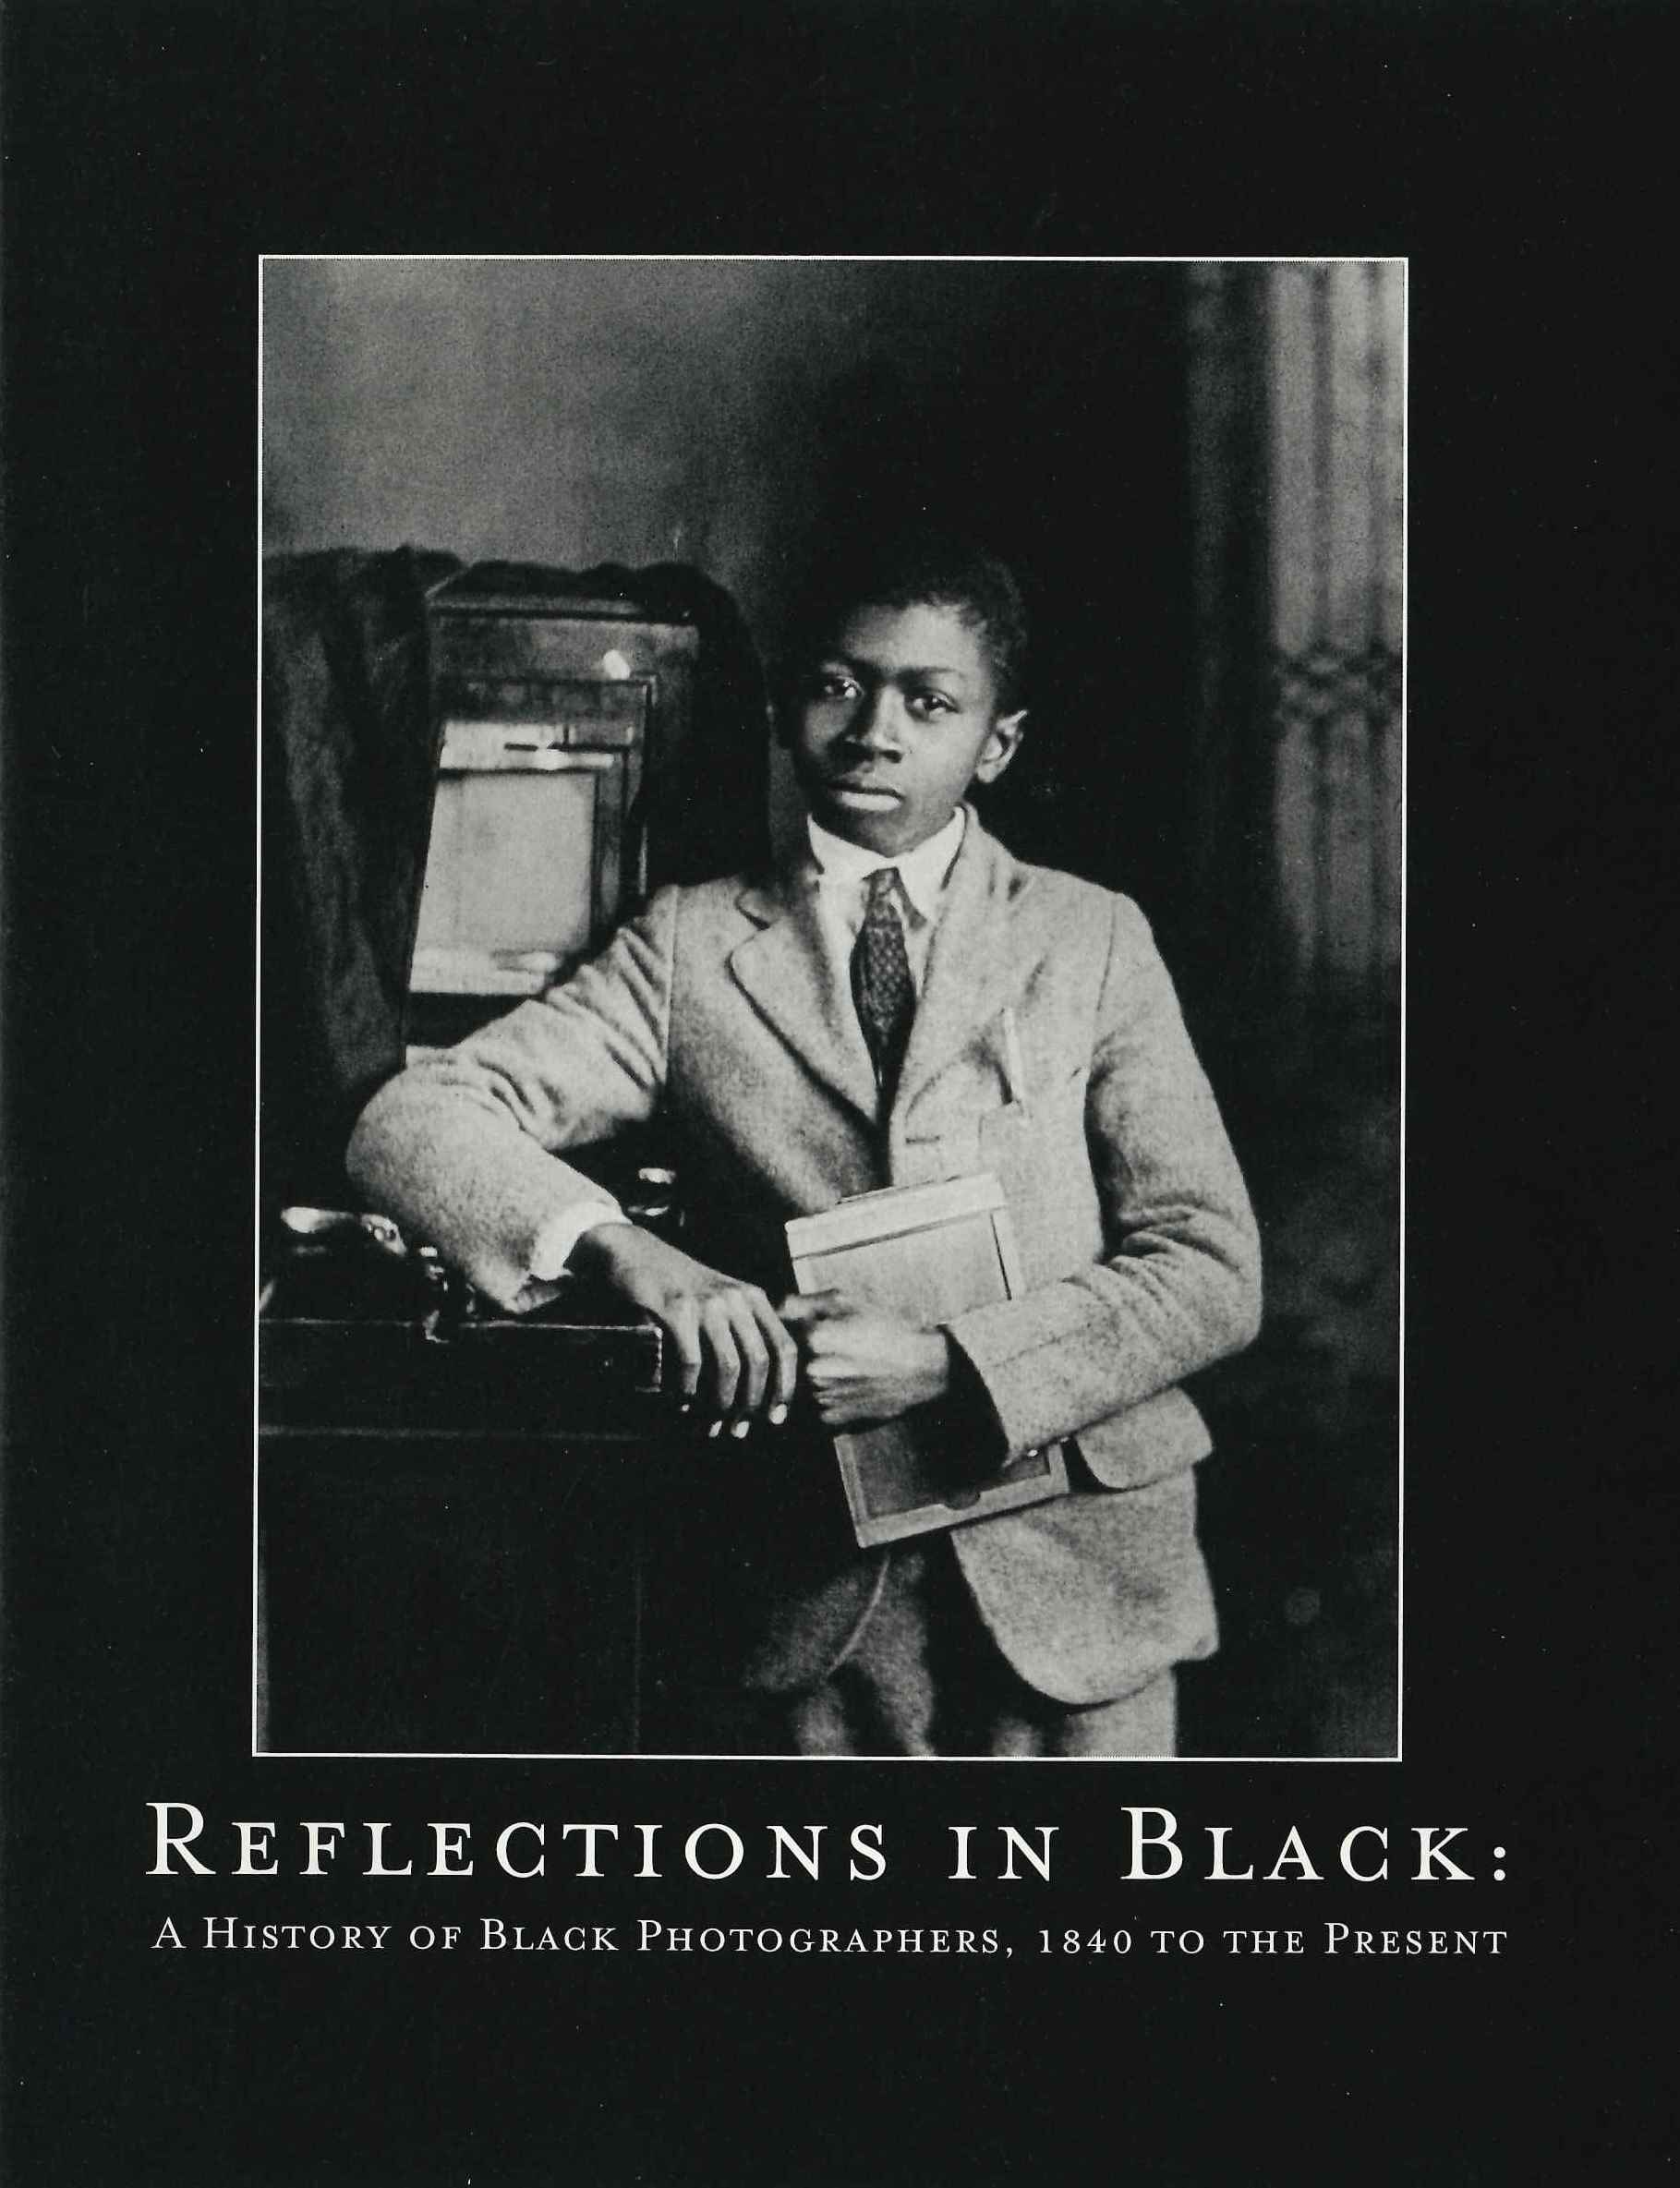 Exhibition brochure - Reflections in Black: A History of Black Photographers, 1840 to the Present, F